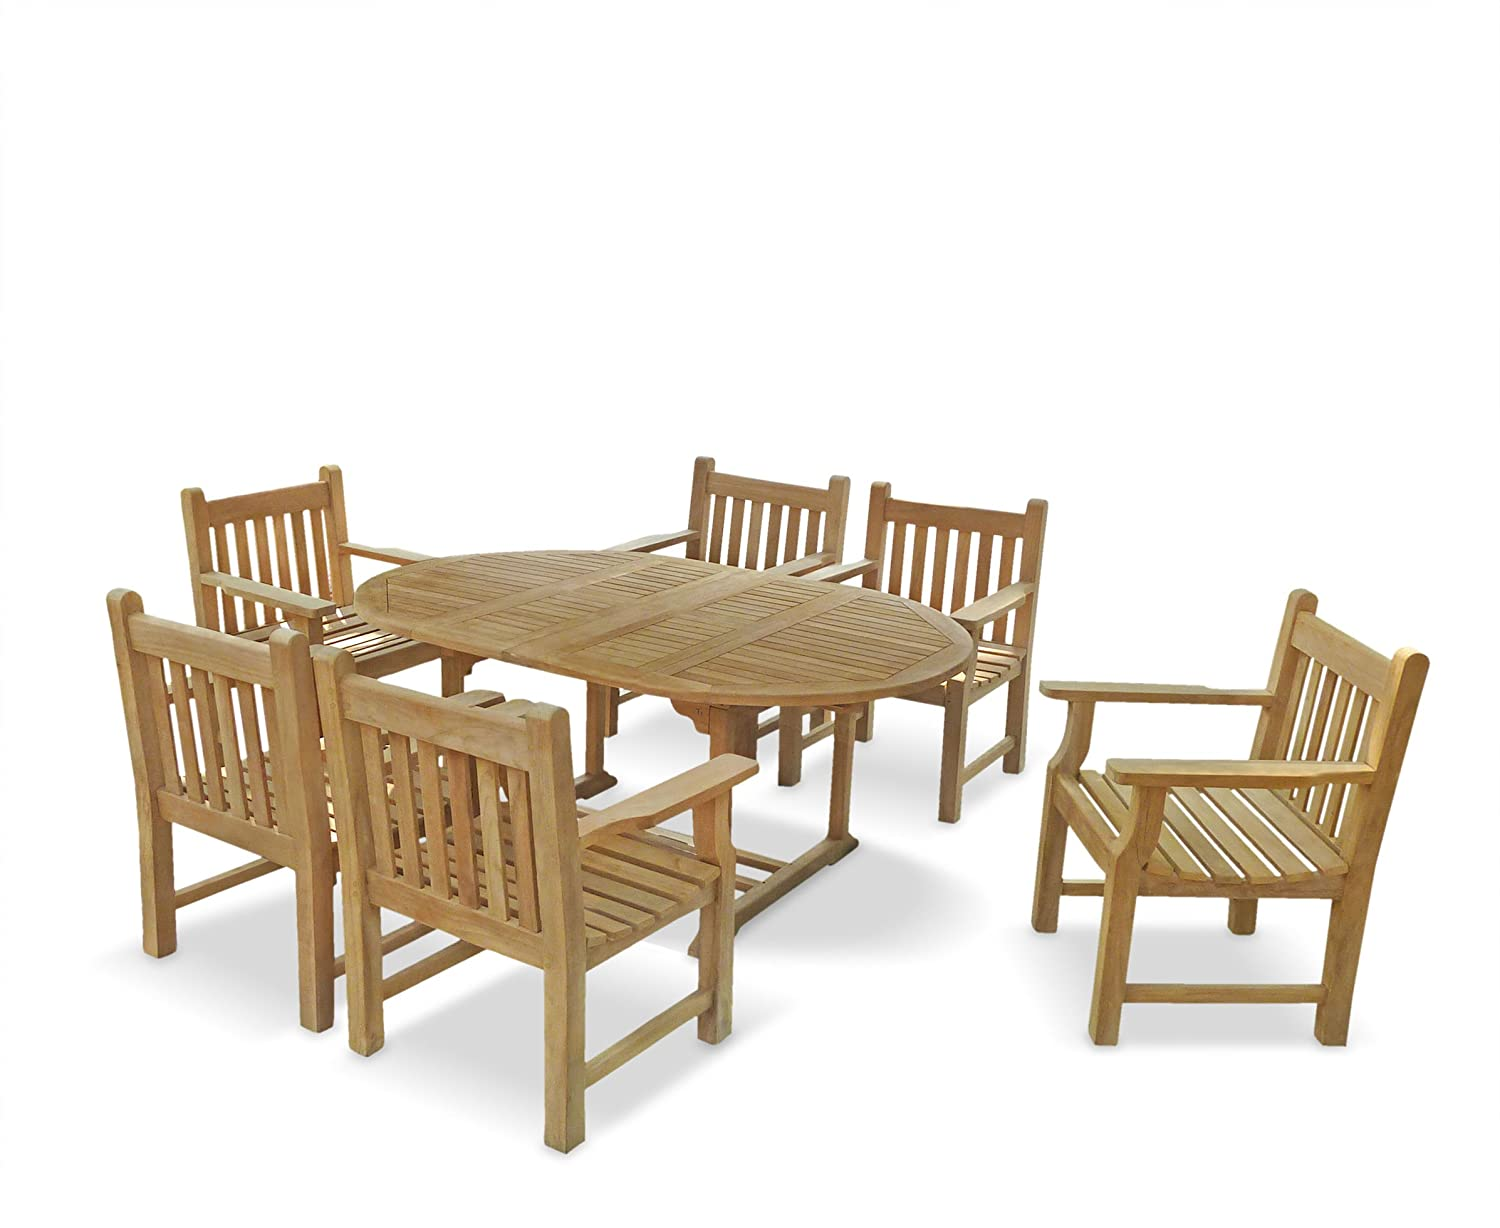 Peachy 6 Seater Teak Garden Dining Set With Extendable Outdoor Cjindustries Chair Design For Home Cjindustriesco